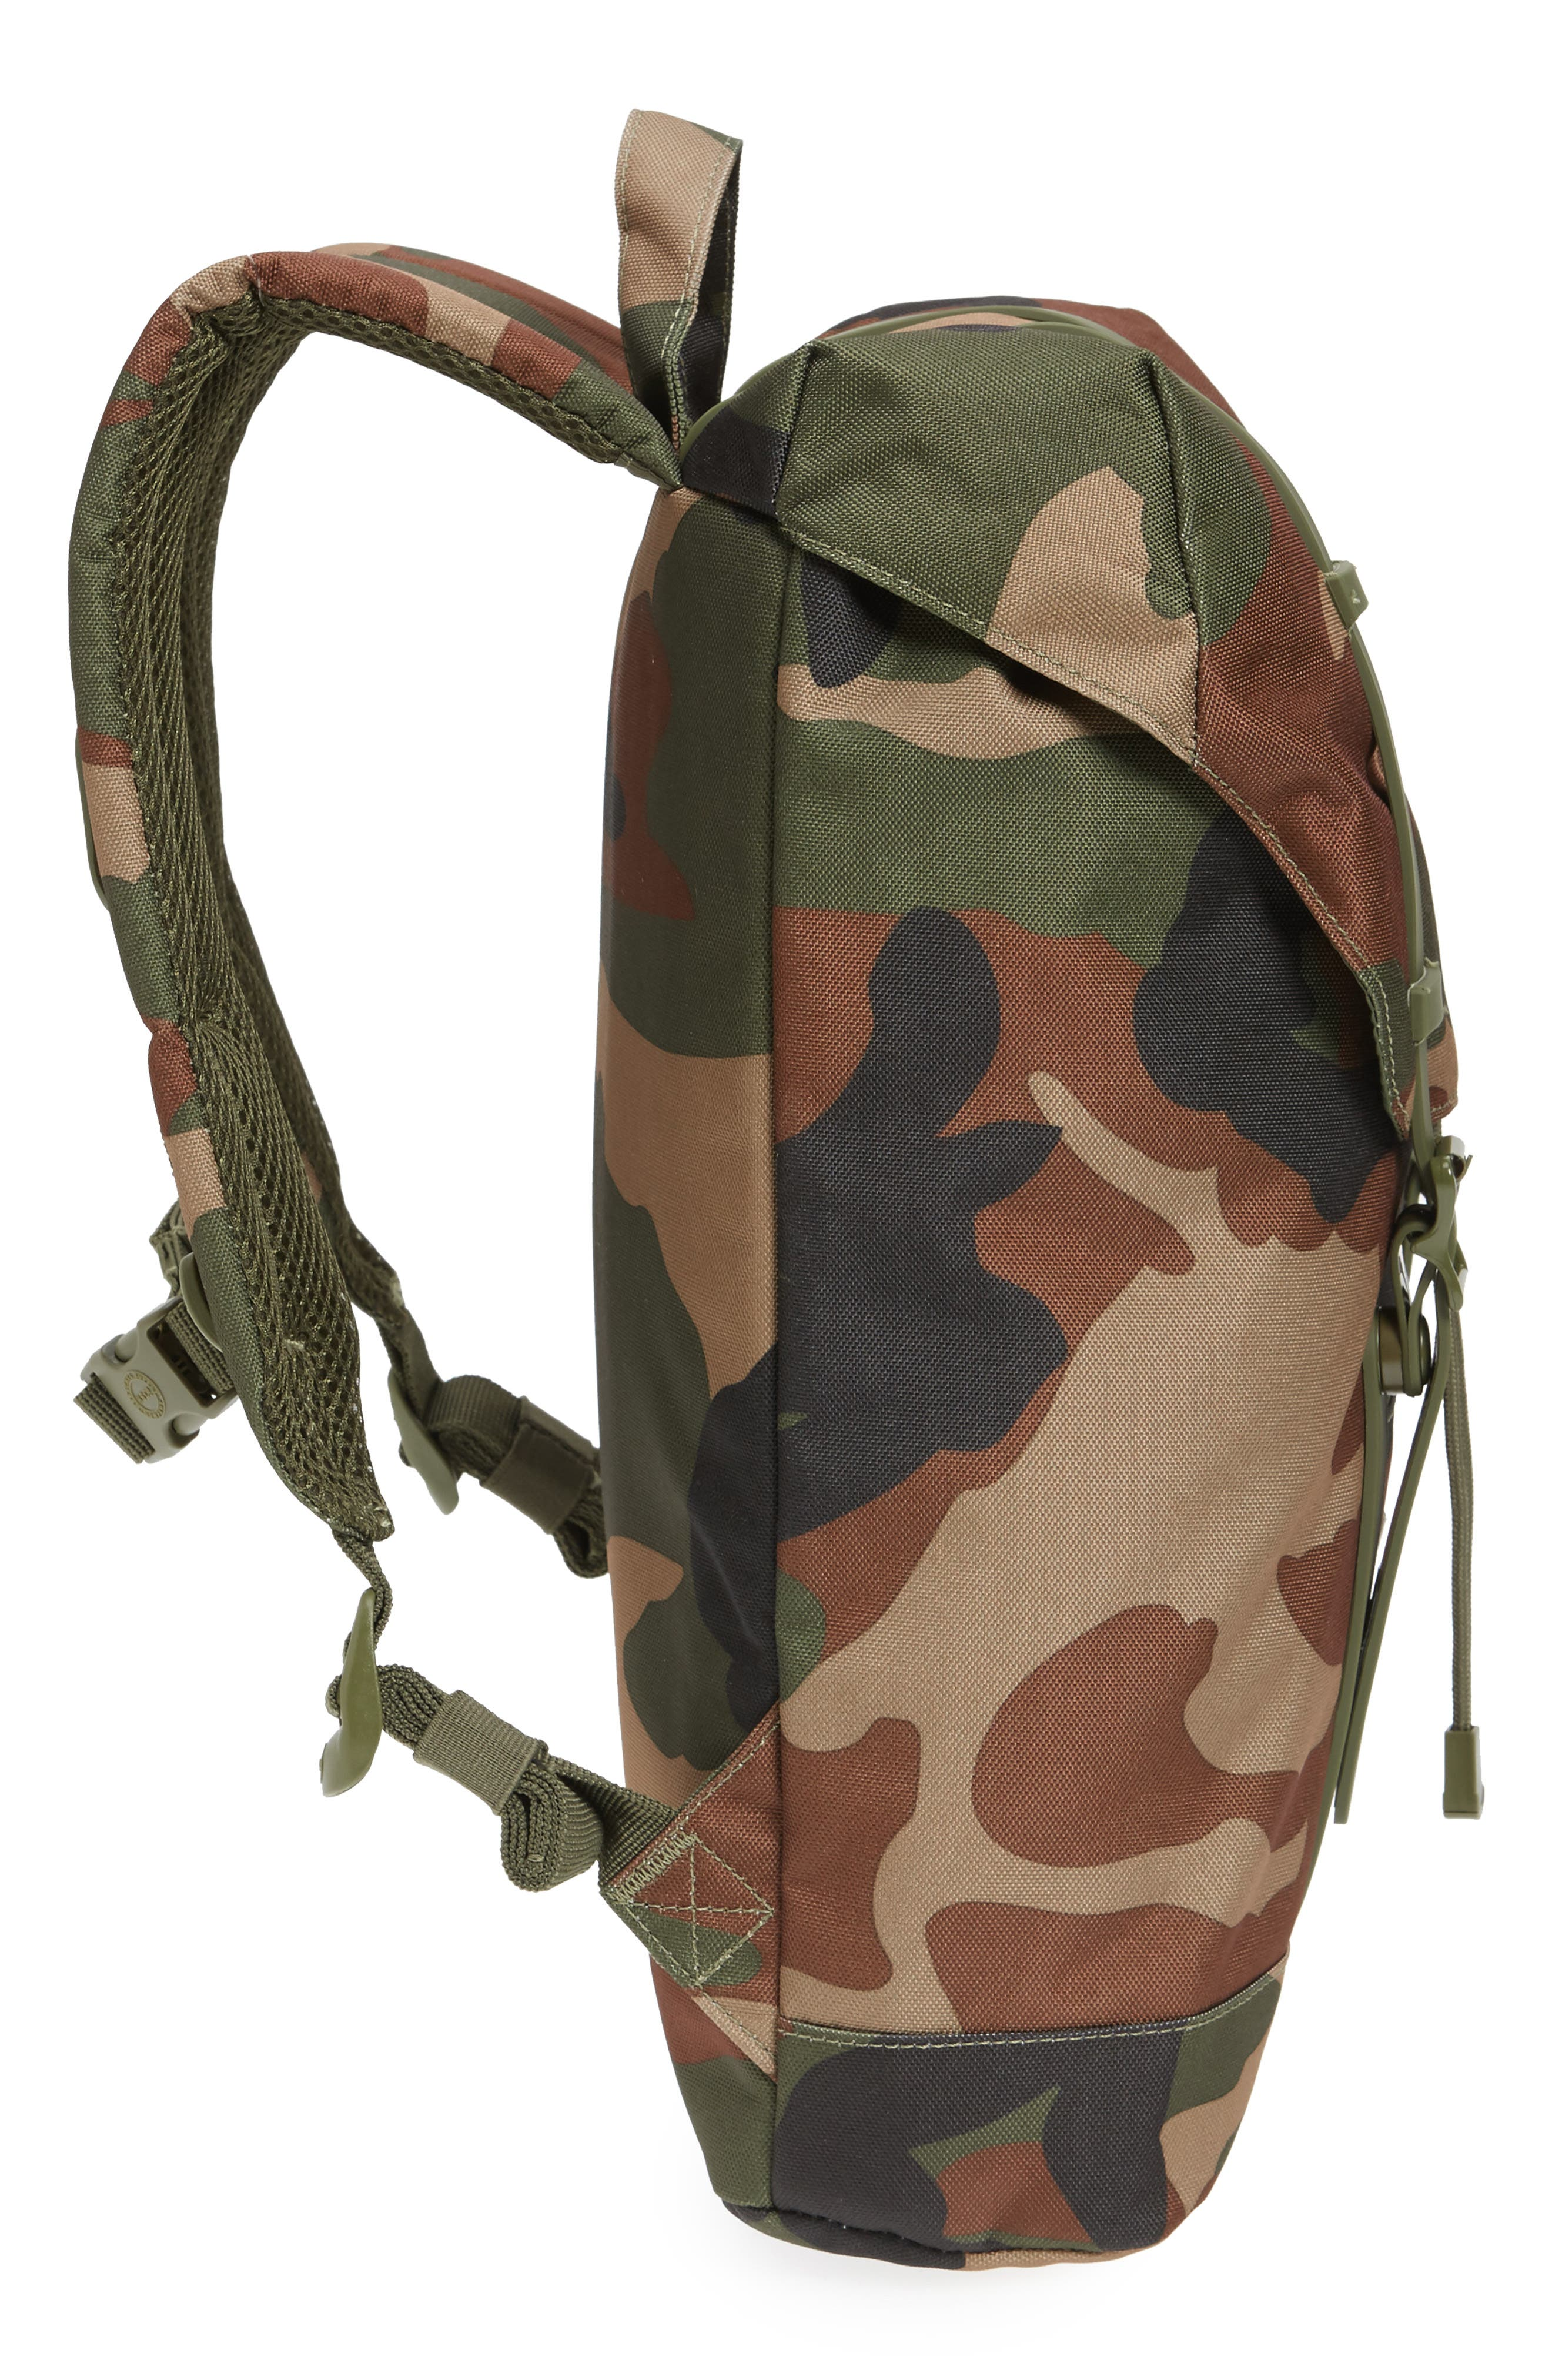 Retreat Camo Backpack,                             Alternate thumbnail 3, color,                             Woodland Camo/ Army Rubber